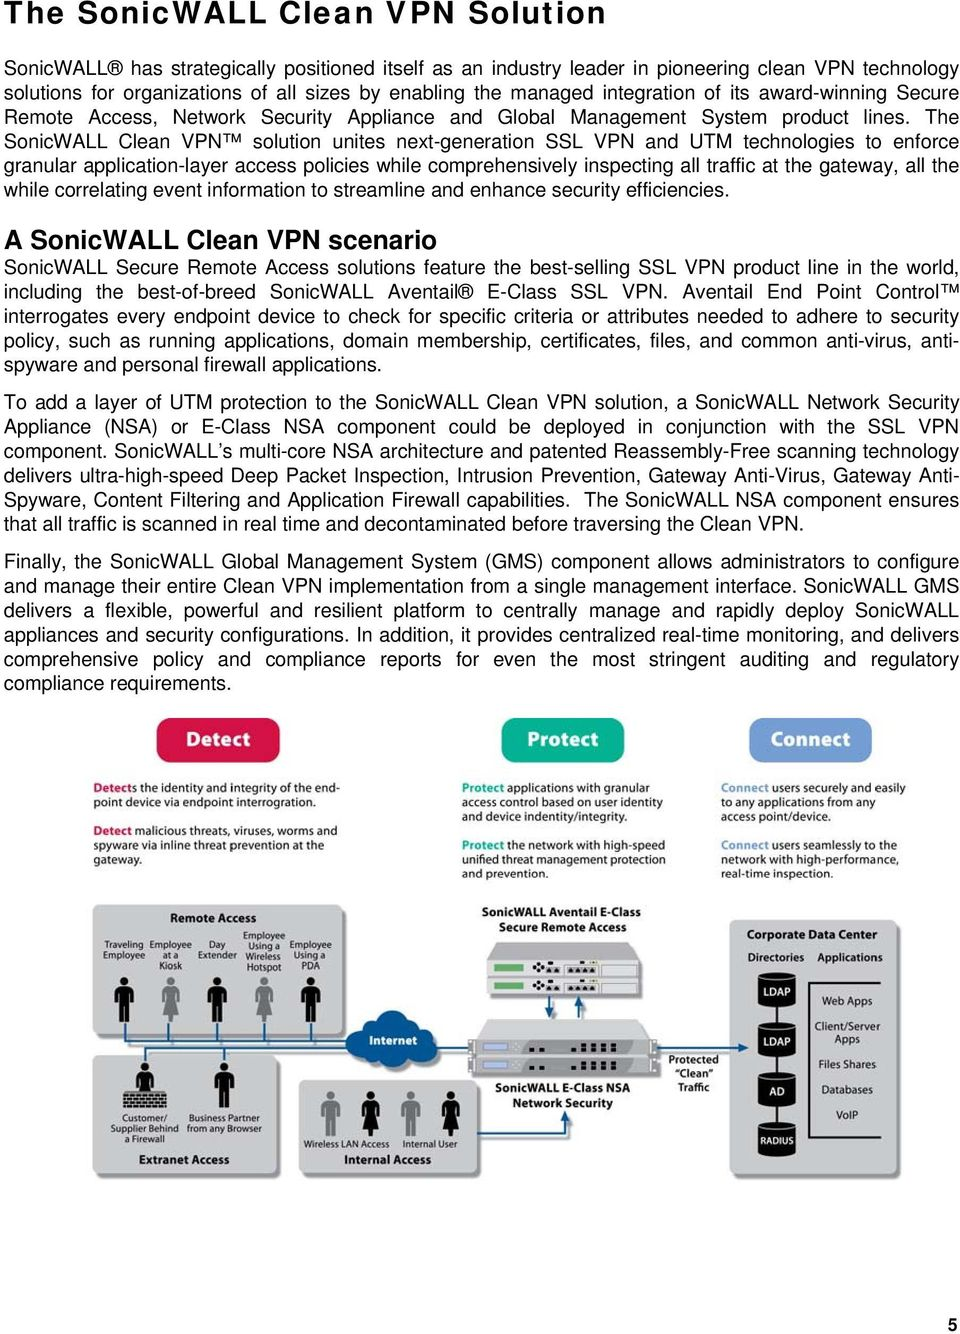 The SonicWALL Clean VPN solution unites next-generation SSL VPN and UTM technologies to enforce granular application-layer access policies while comprehensively inspecting all traffic at the gateway,